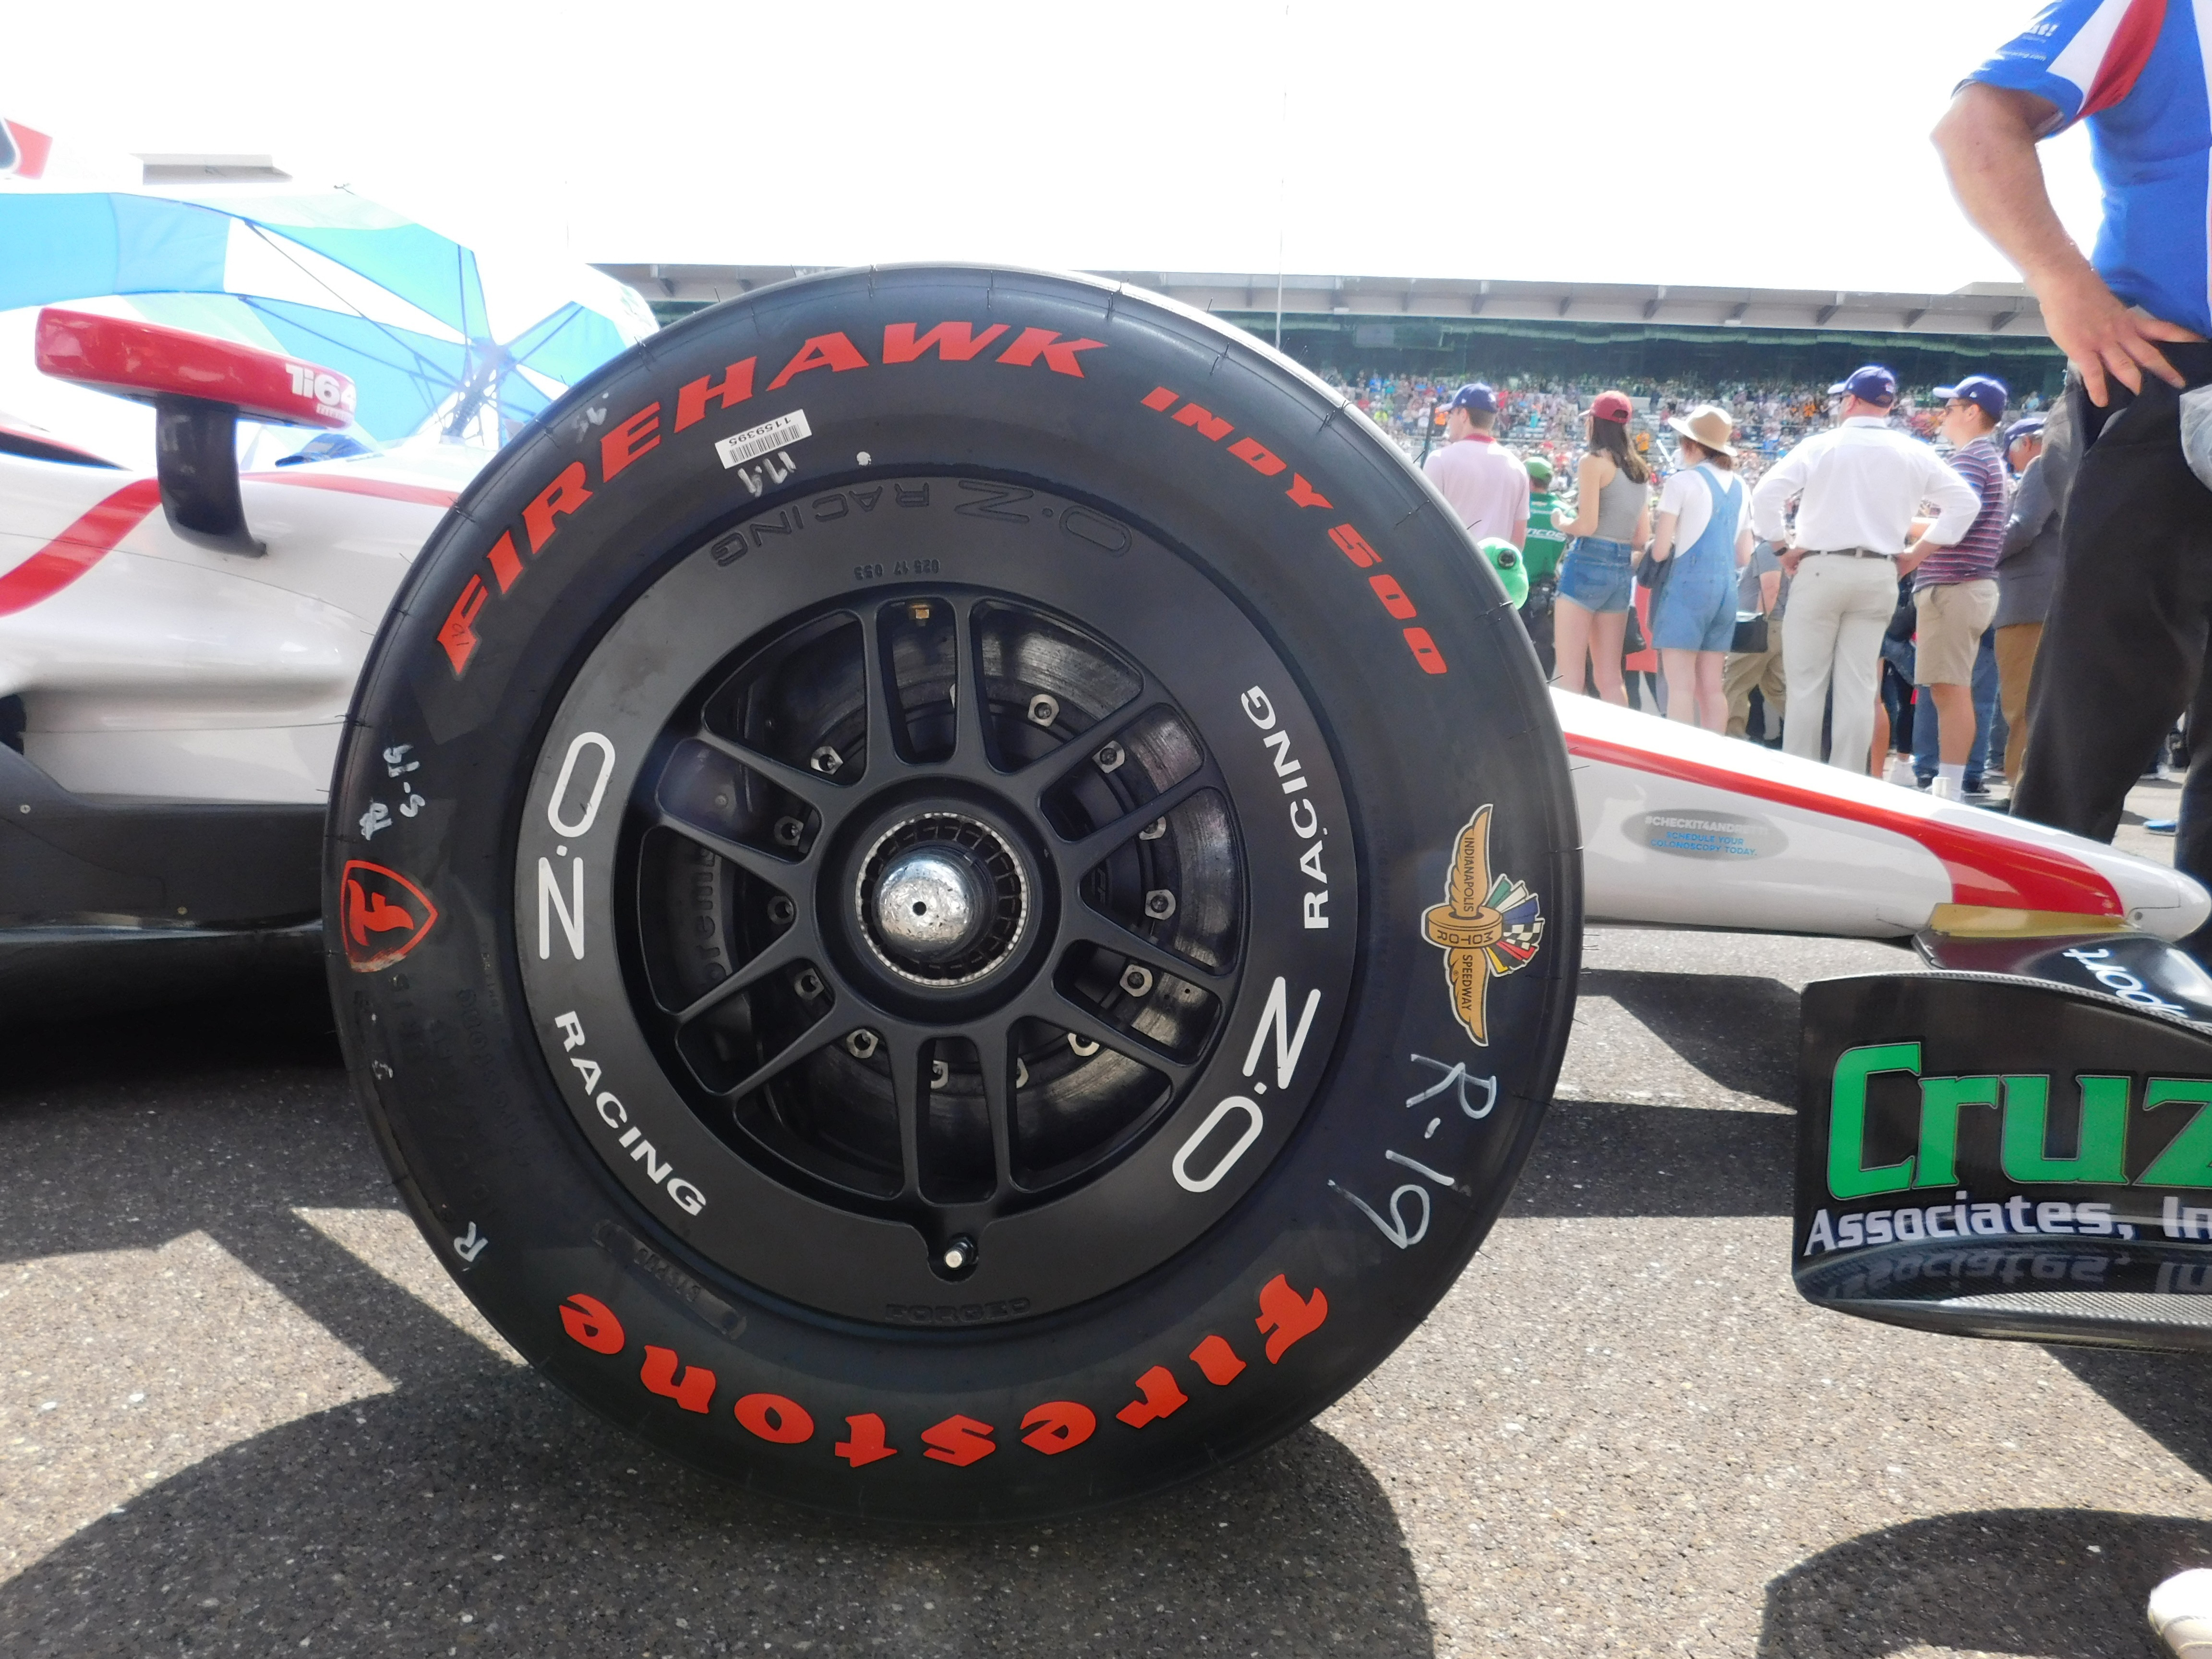 File:Firehawk Indy 500 2017 Indianapolis 500.jpg - Wikimedia Commons